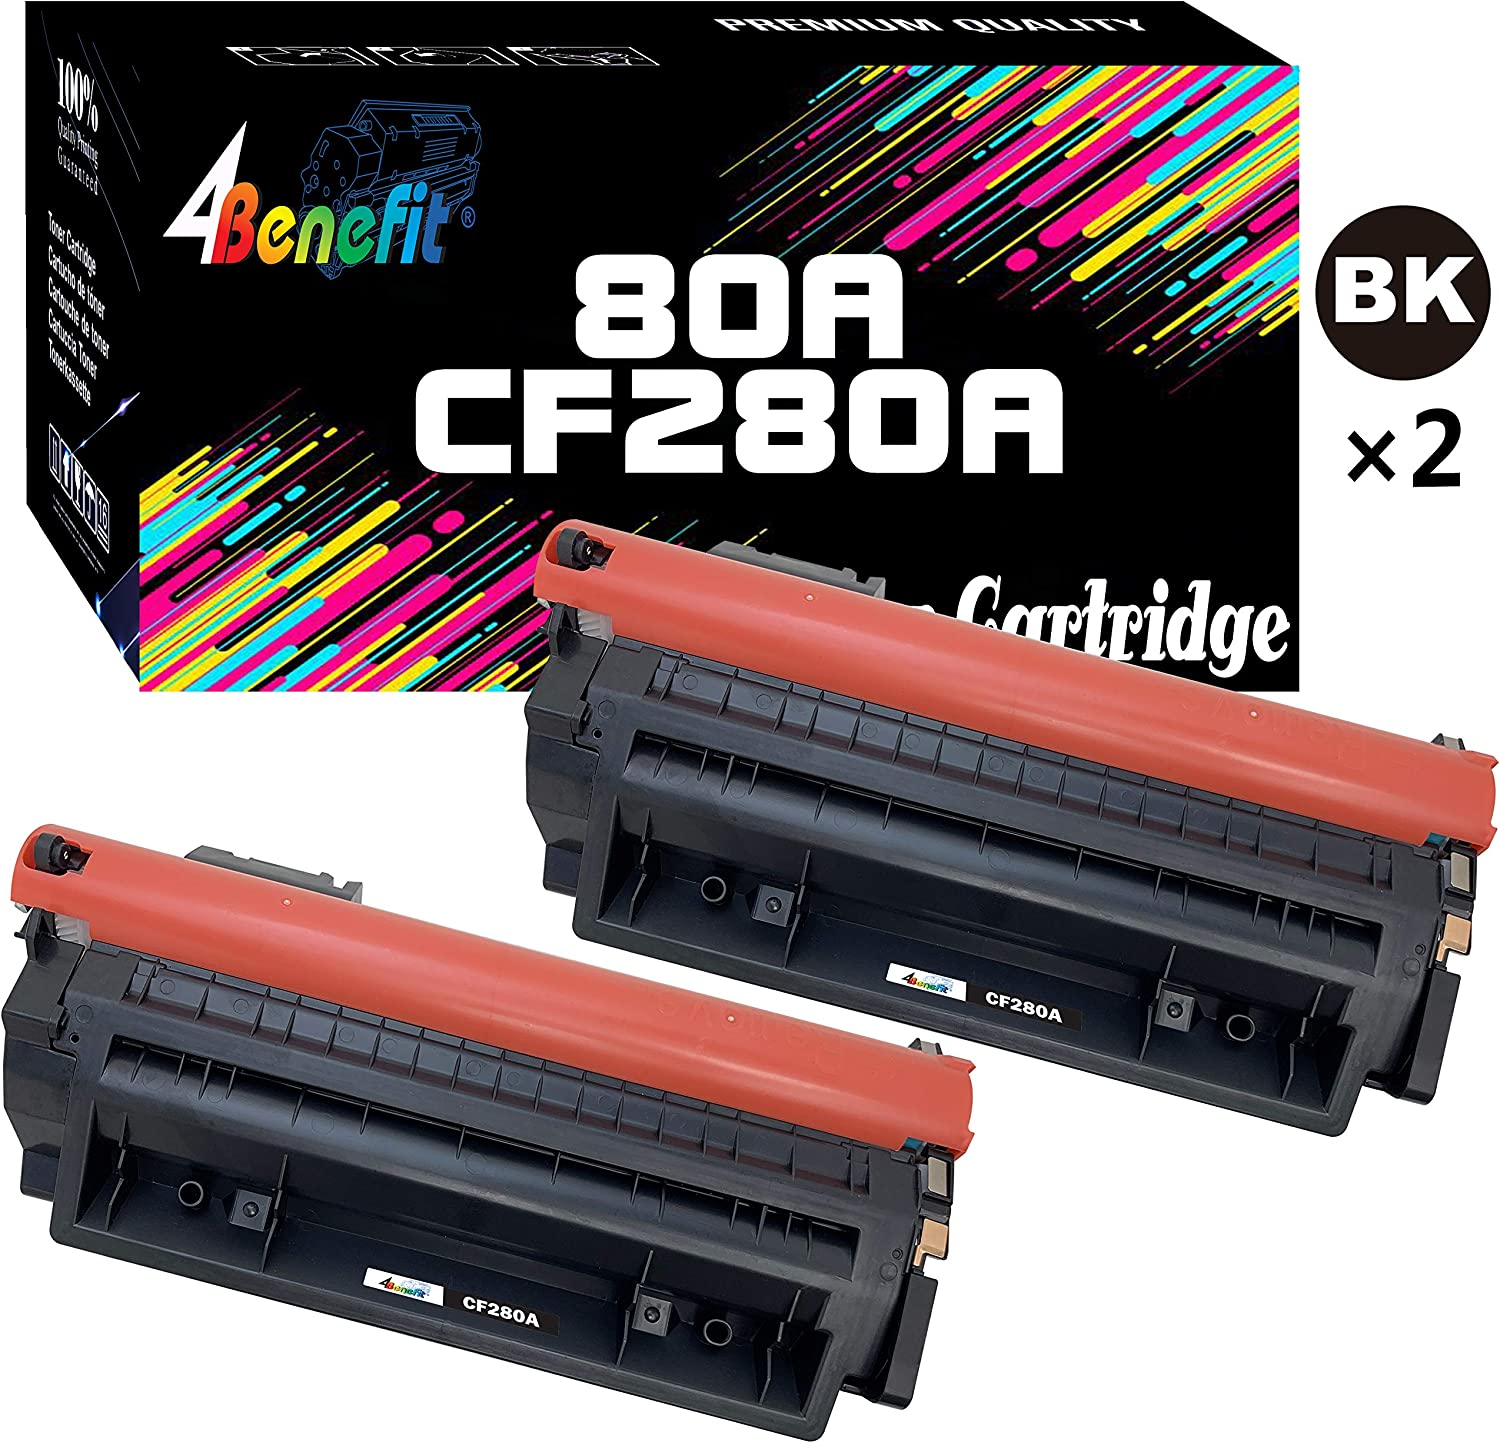 4Benefit Compatible Toner Cartridge Replacement for HP 80A CF280A 80X CF280X to Used for HP Laserjet Pro 400 MFP M425d M425dw M401n M401dw M401dne M401dn Printer (2-Pack, Black)